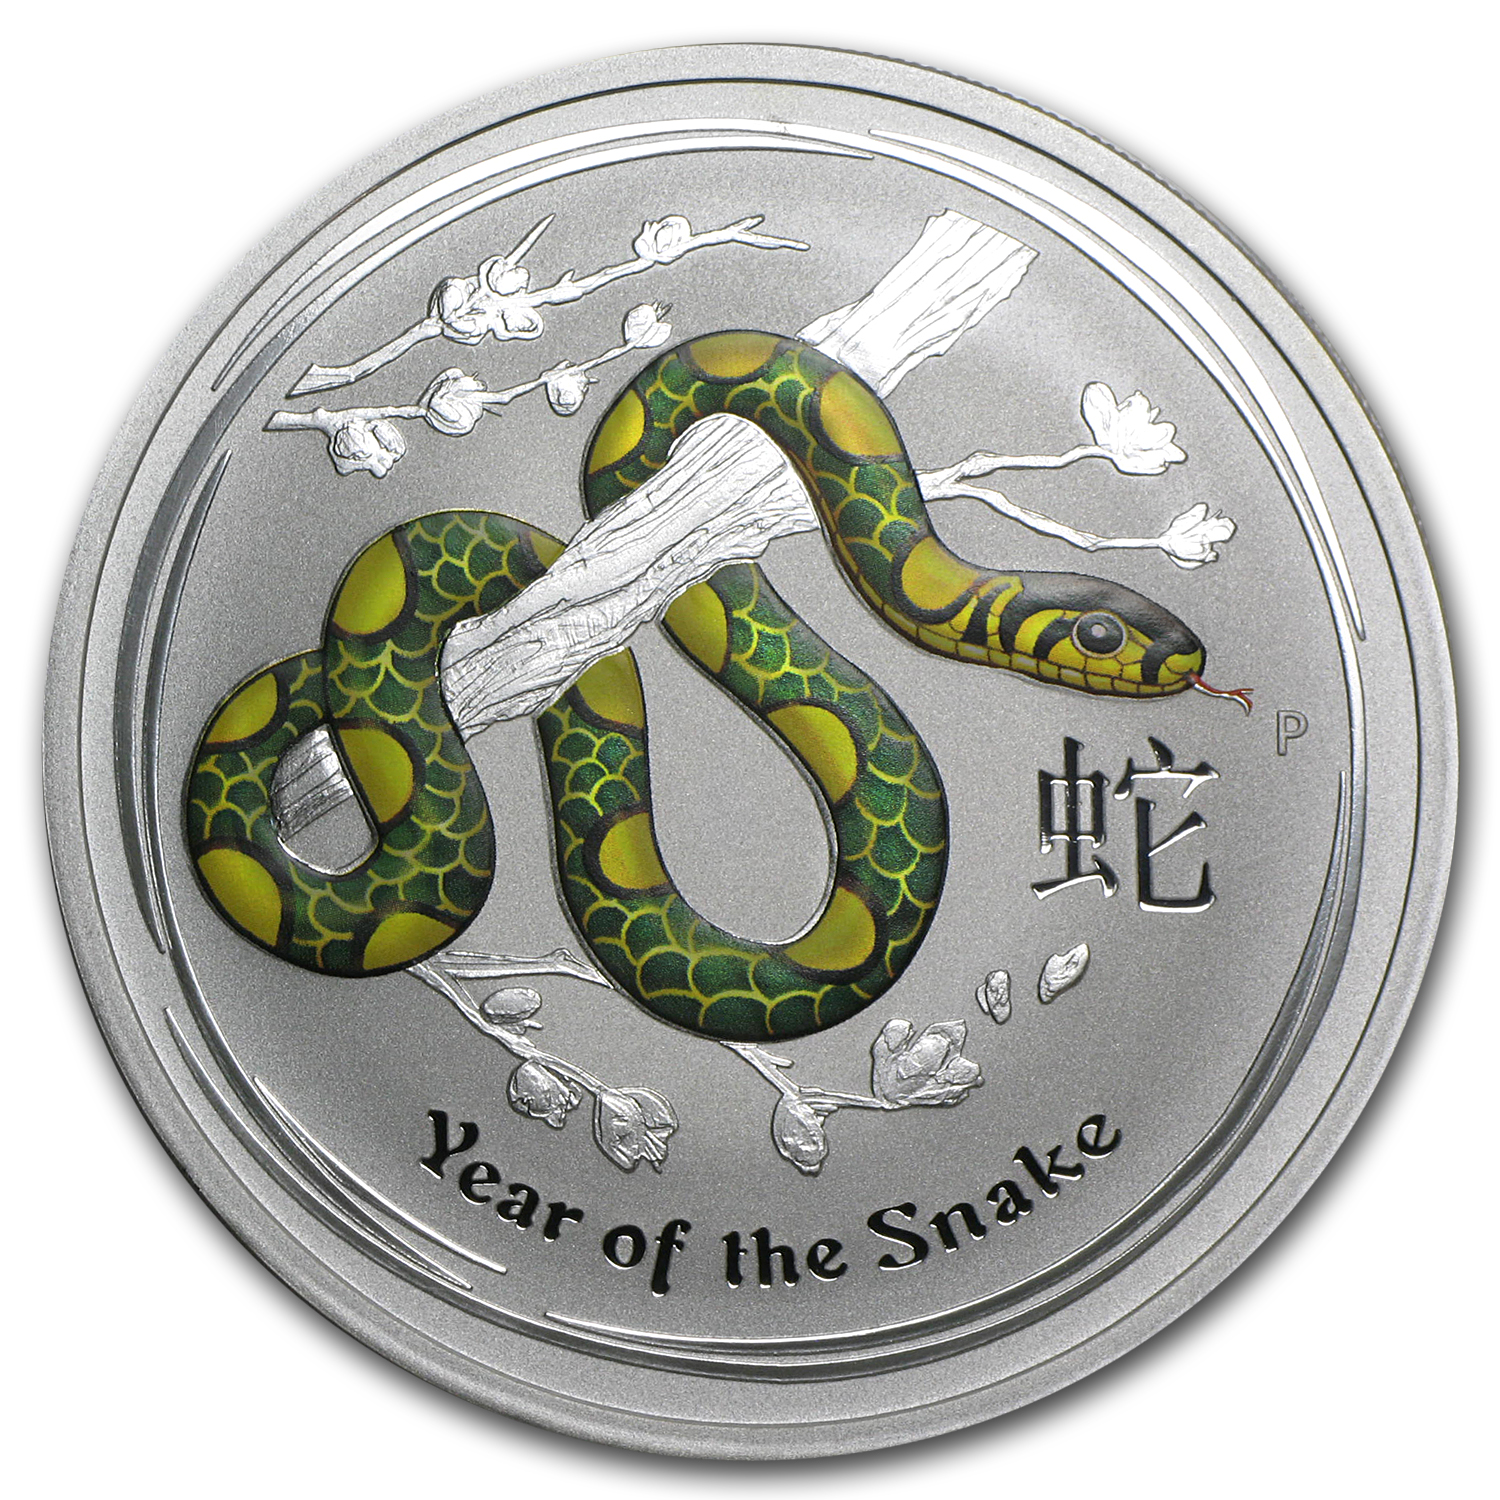 2013 2 oz Silver Year of the Snake Perth ANDA Coin Show Special